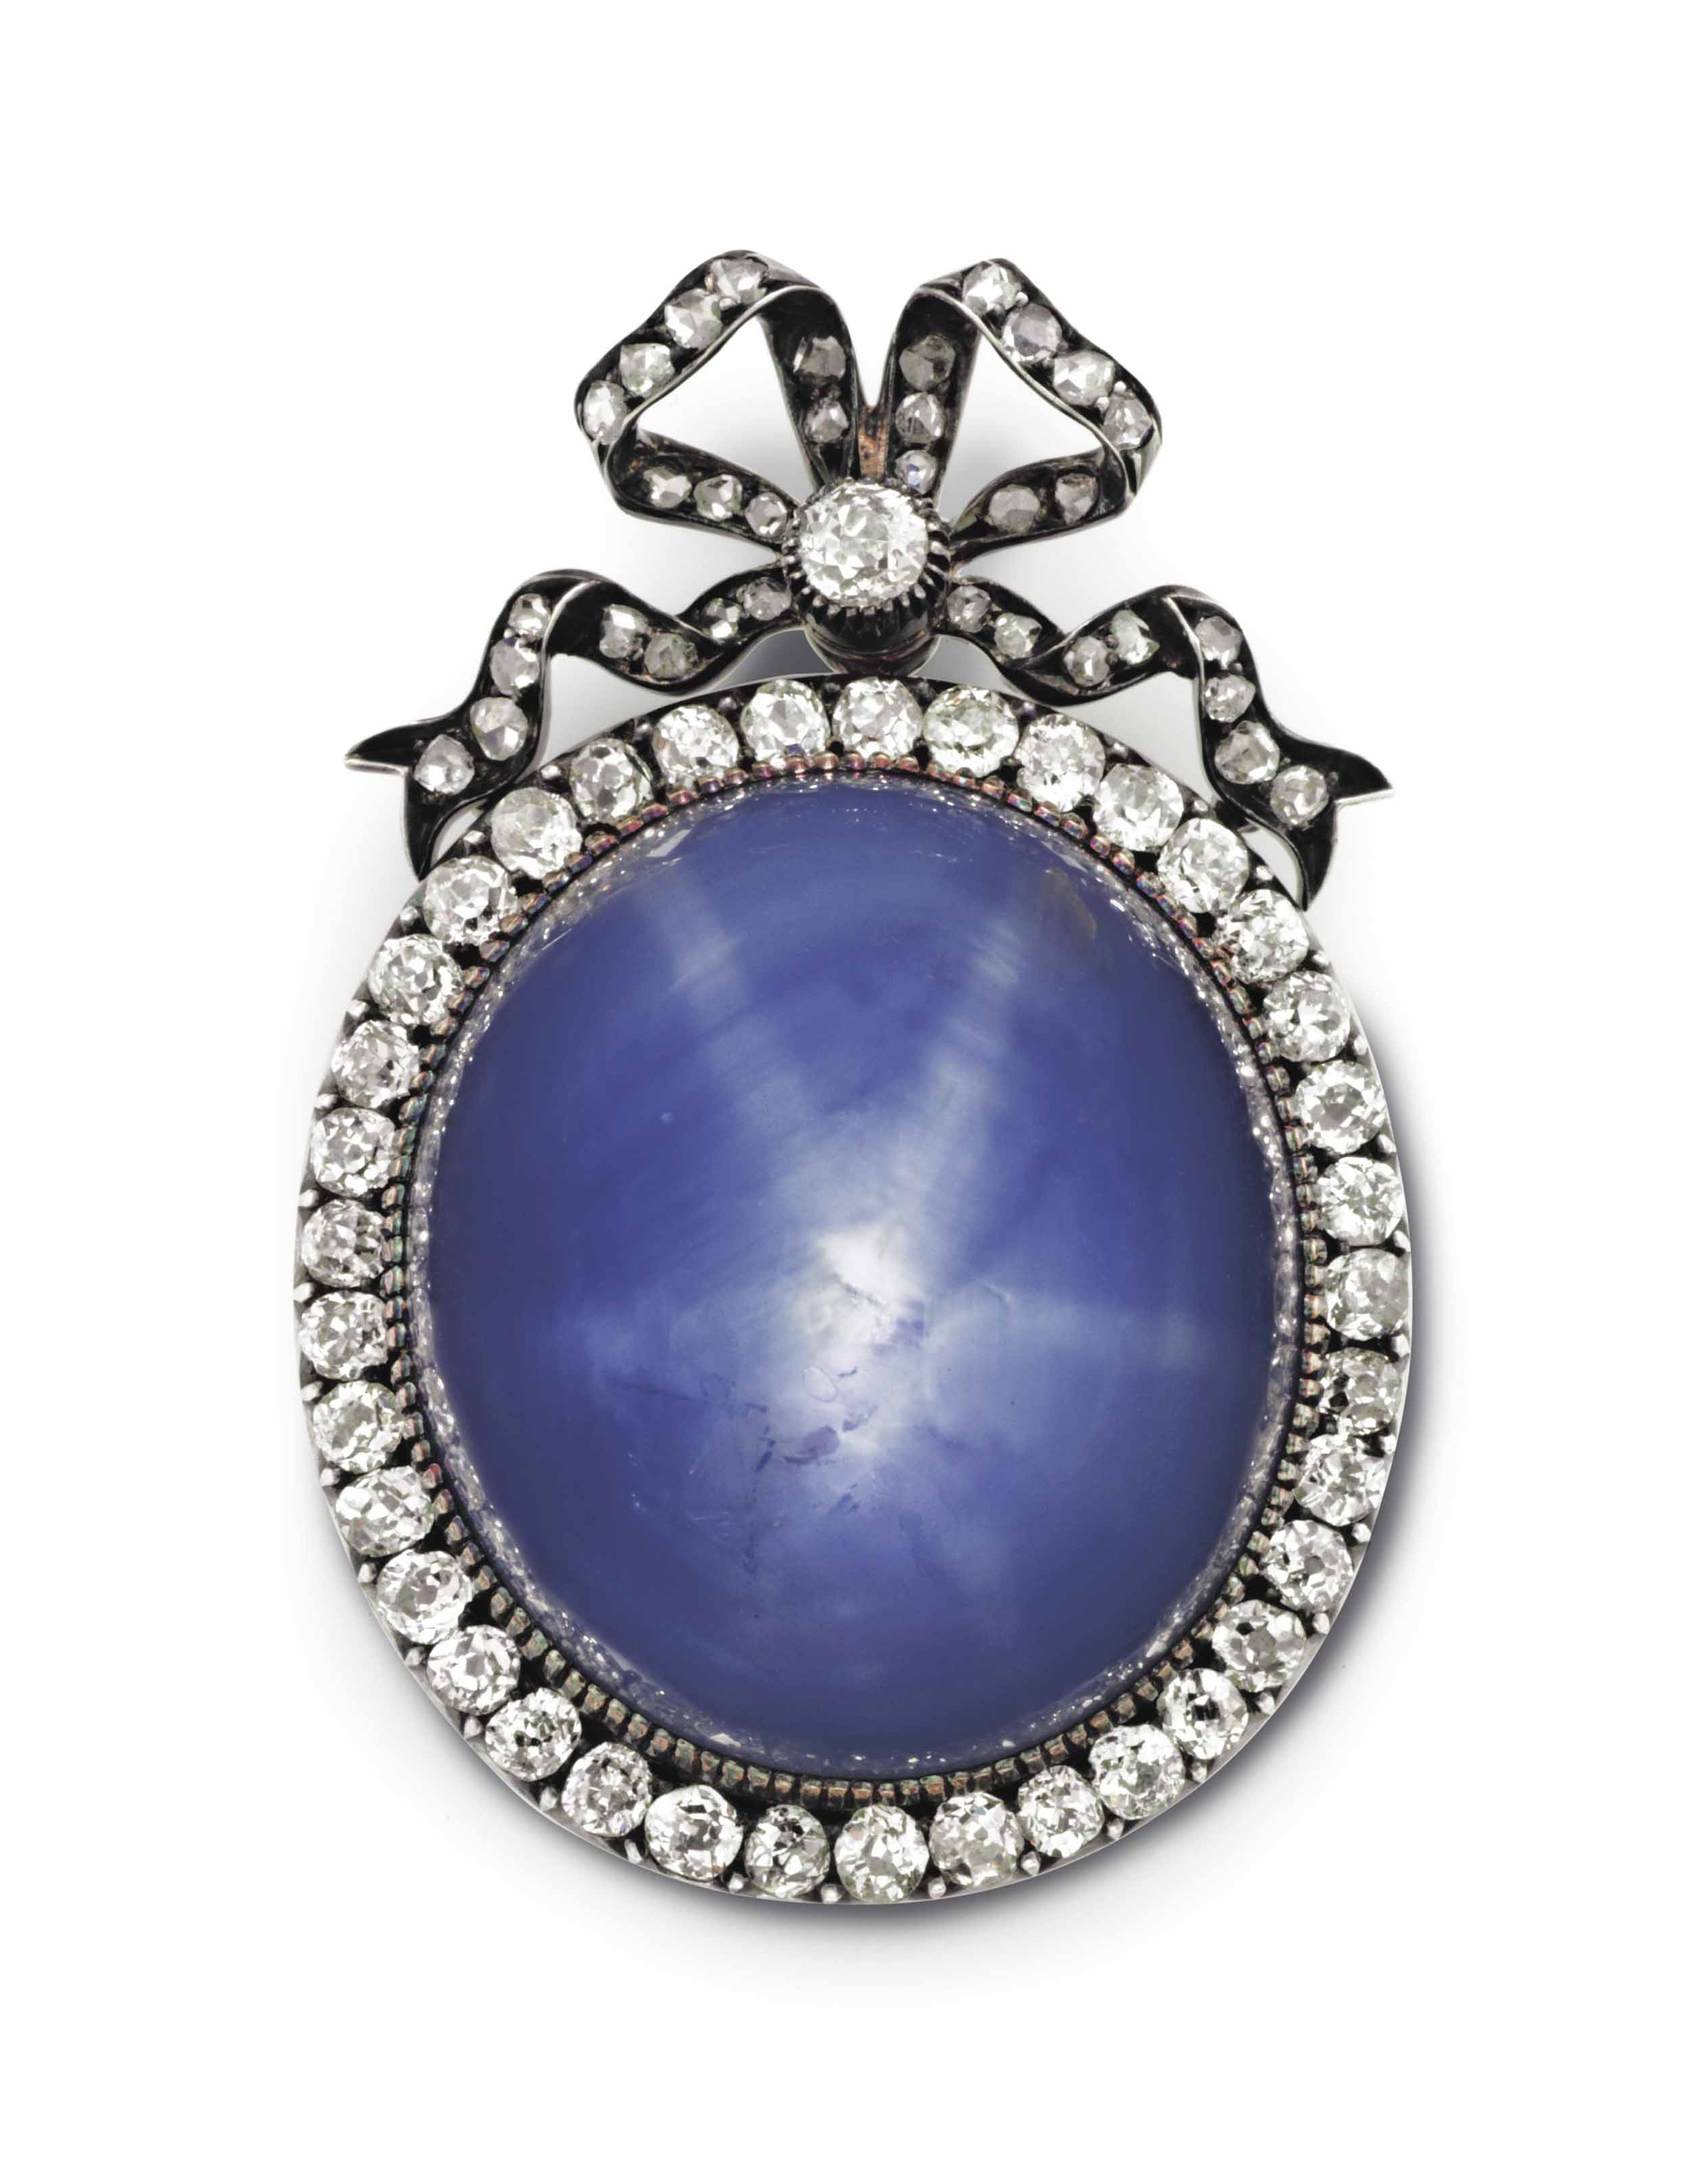 A SILVER TOPPED GOLD-MOUNTED STAR SAPPHIRE AND DIAMOND PENDANT BROOCH